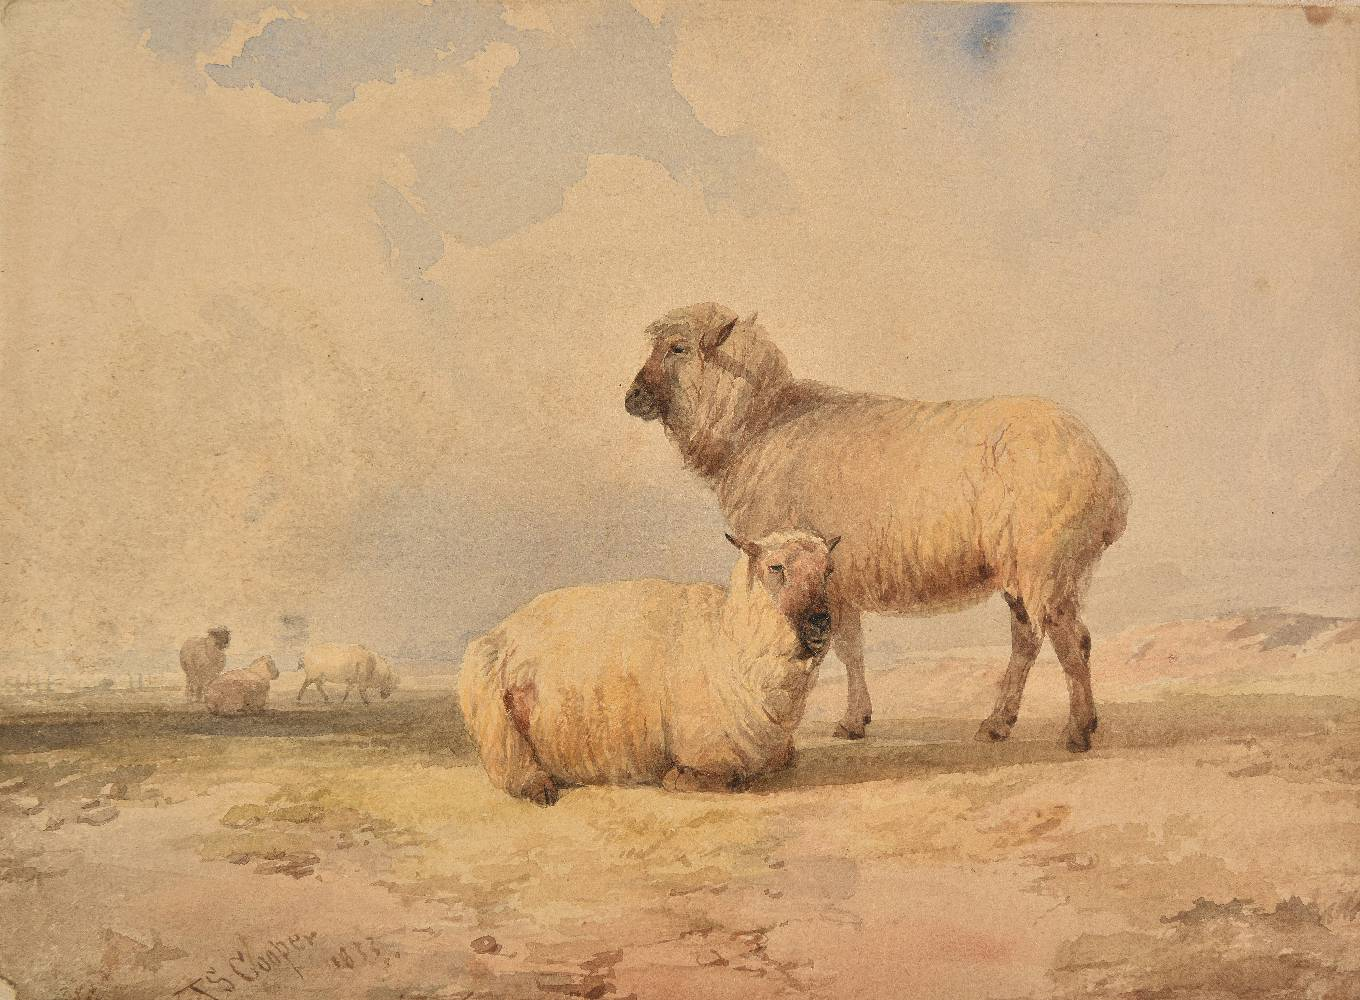 Lot 60 - *Cooper (Thomas Sidney, 1803-1902). Landscape with sheep, 1833, watercolour on laid paper, laid down